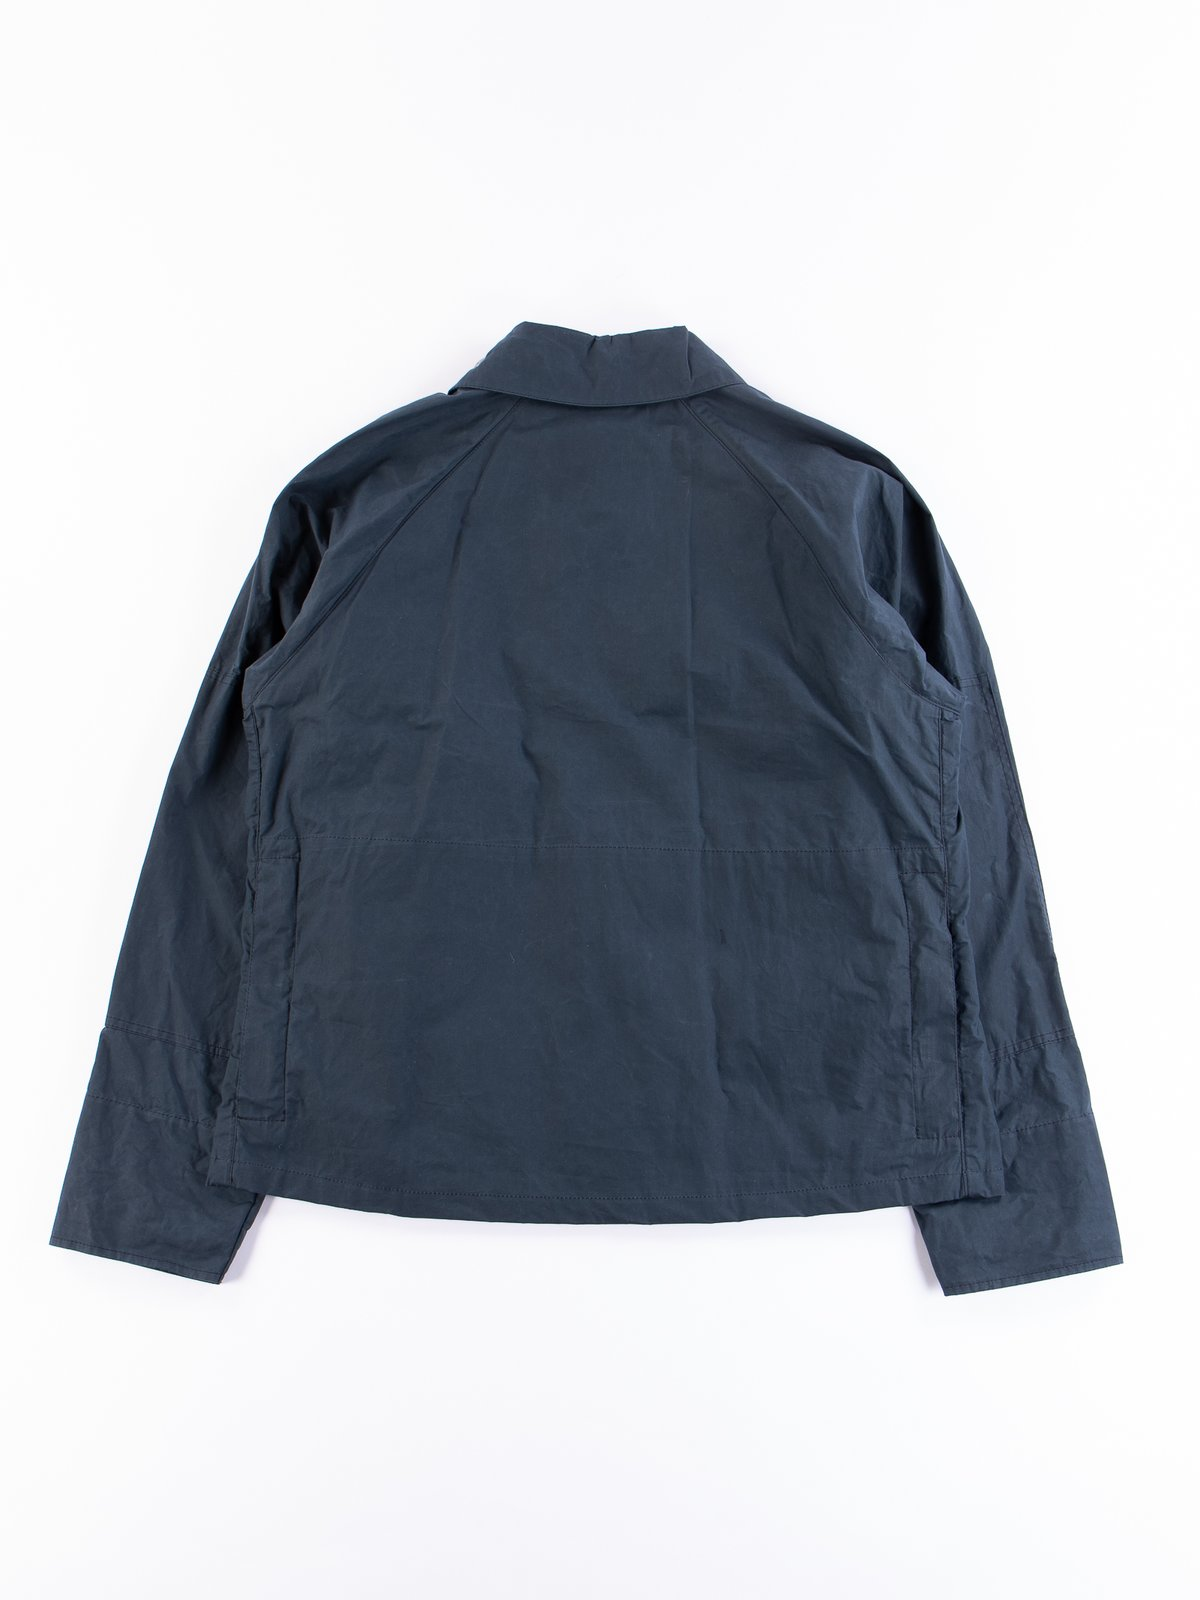 Navy Unlined Graham Jacket - Image 6